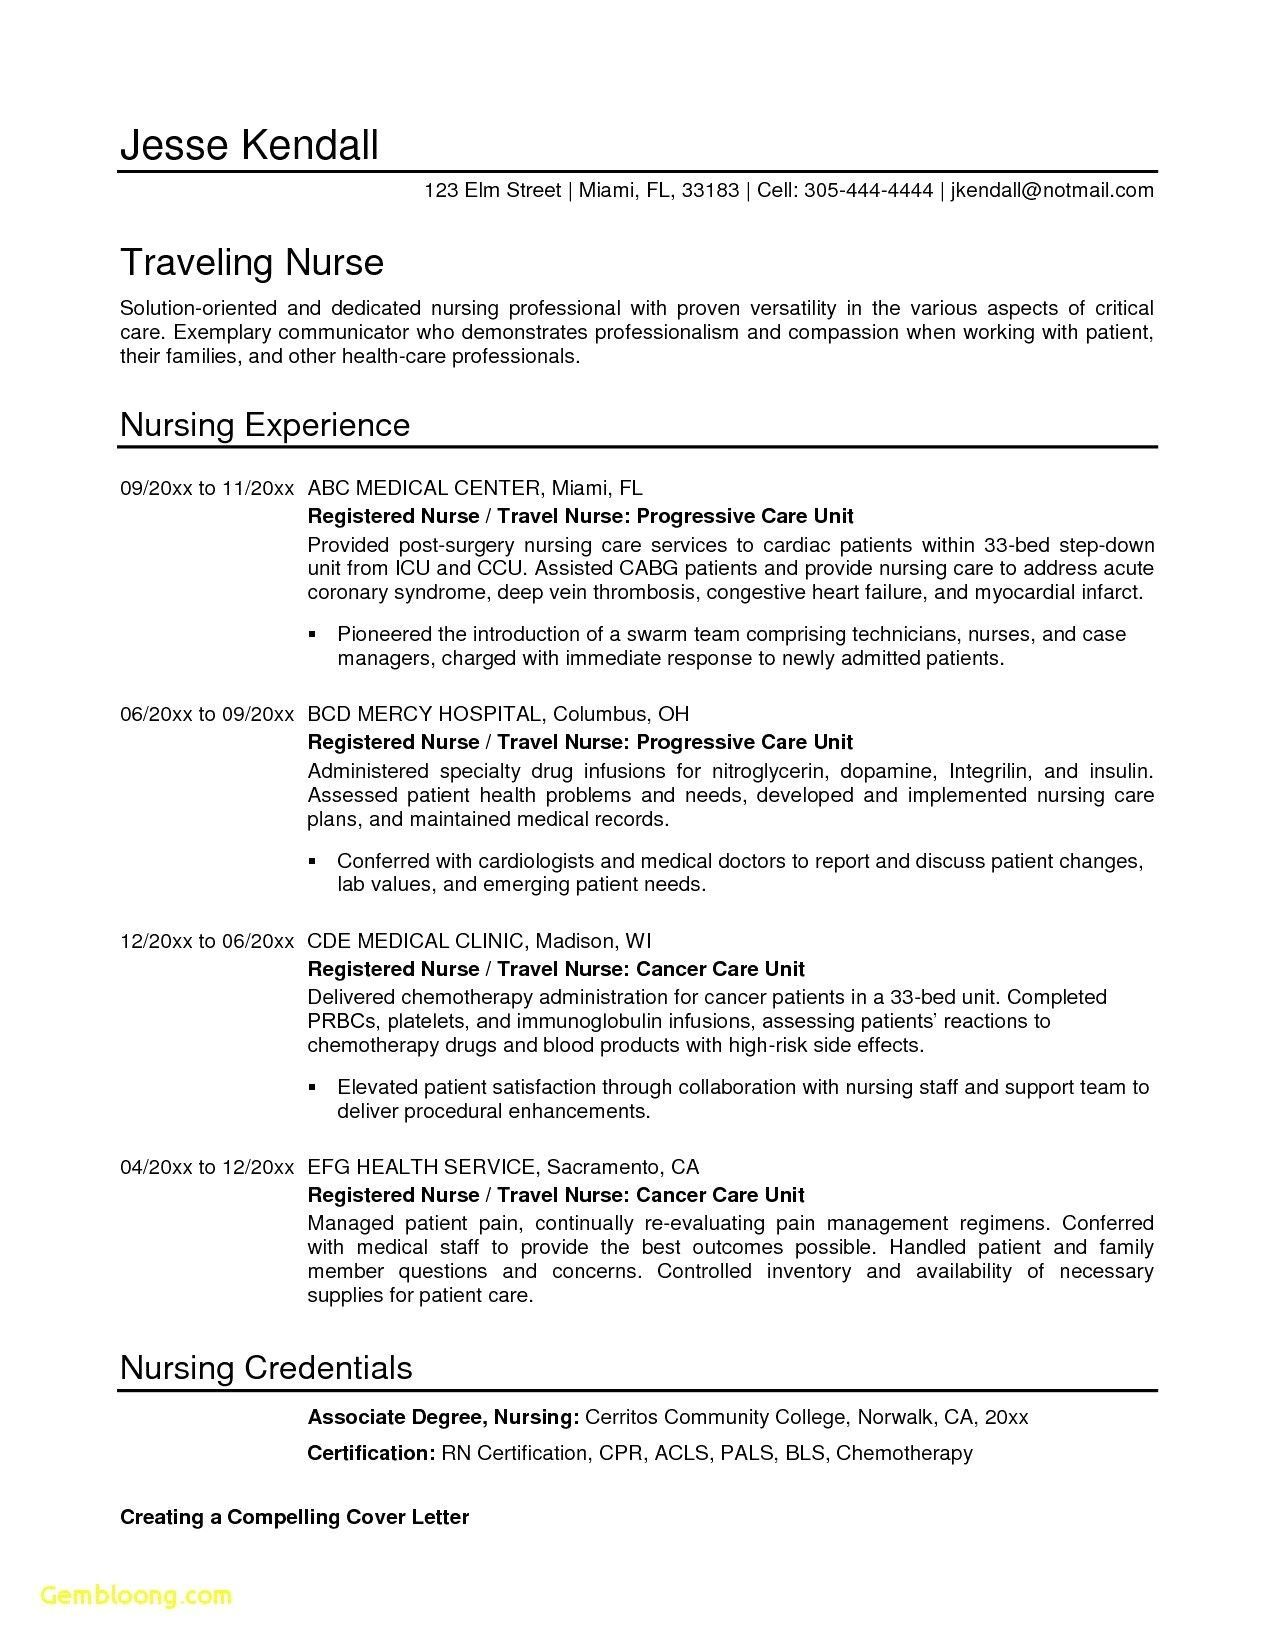 Cv Template For Over 60 Cvtemplate Template Legal Nurse Consultant Resume Objective Examples Address Book Template